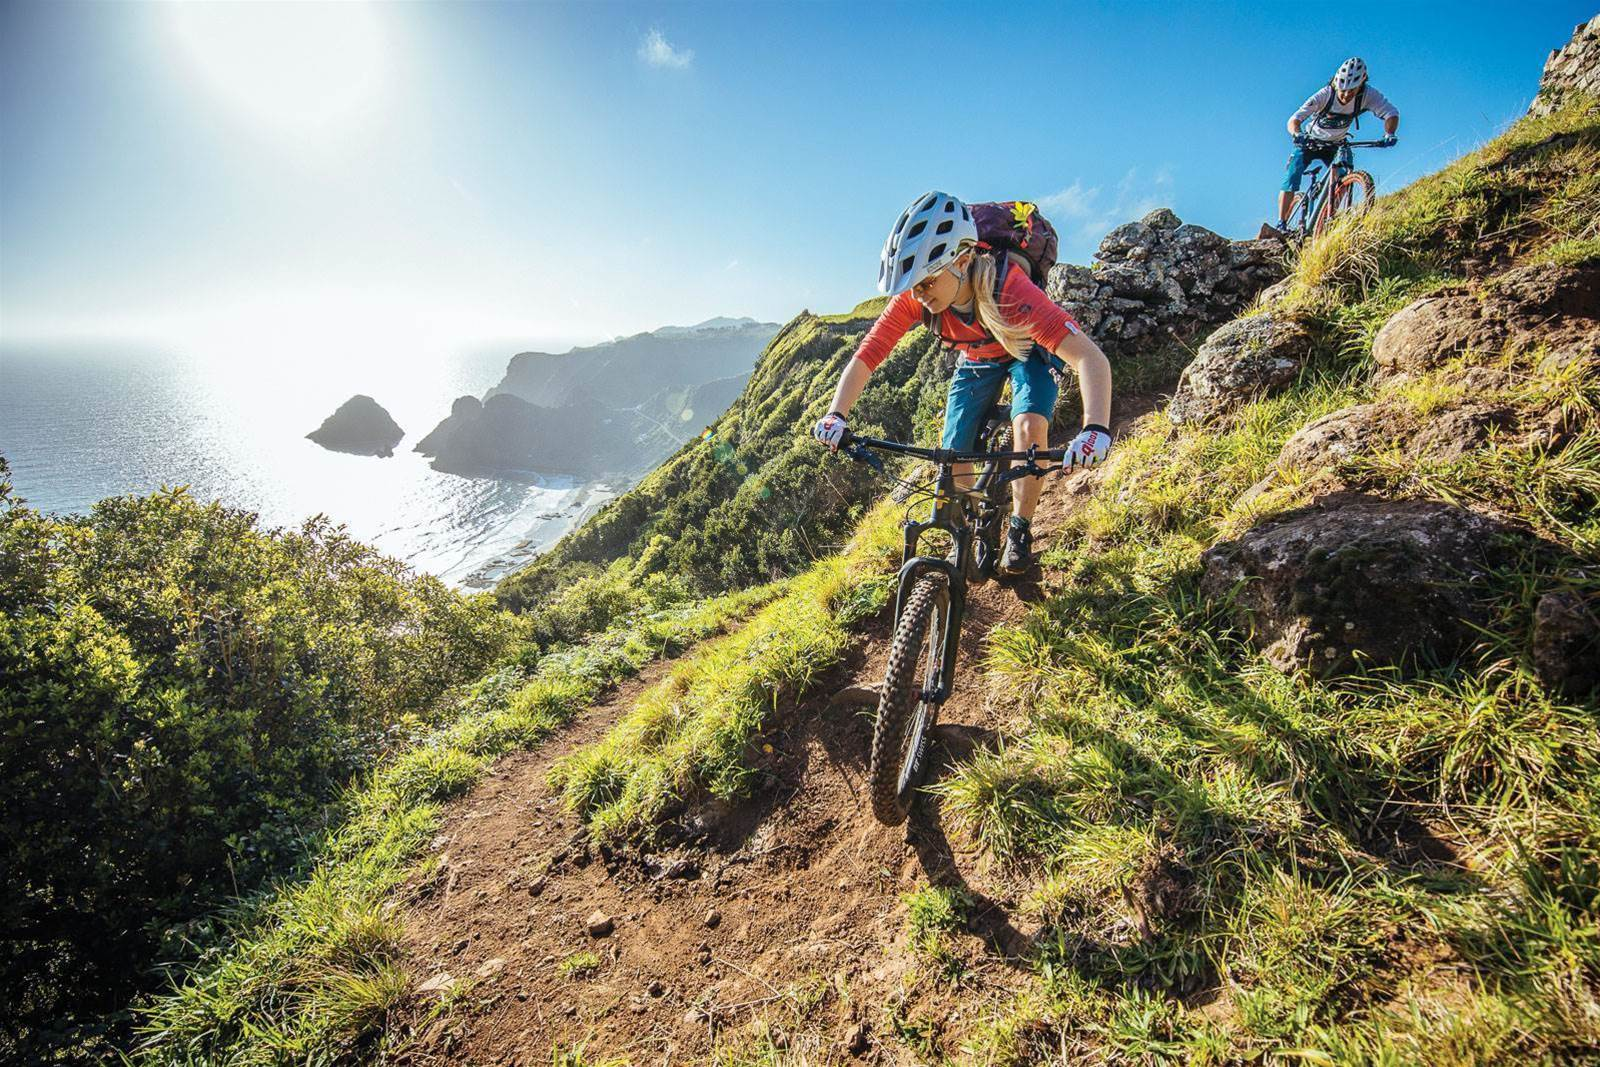 Azores: Dancing on a volcano